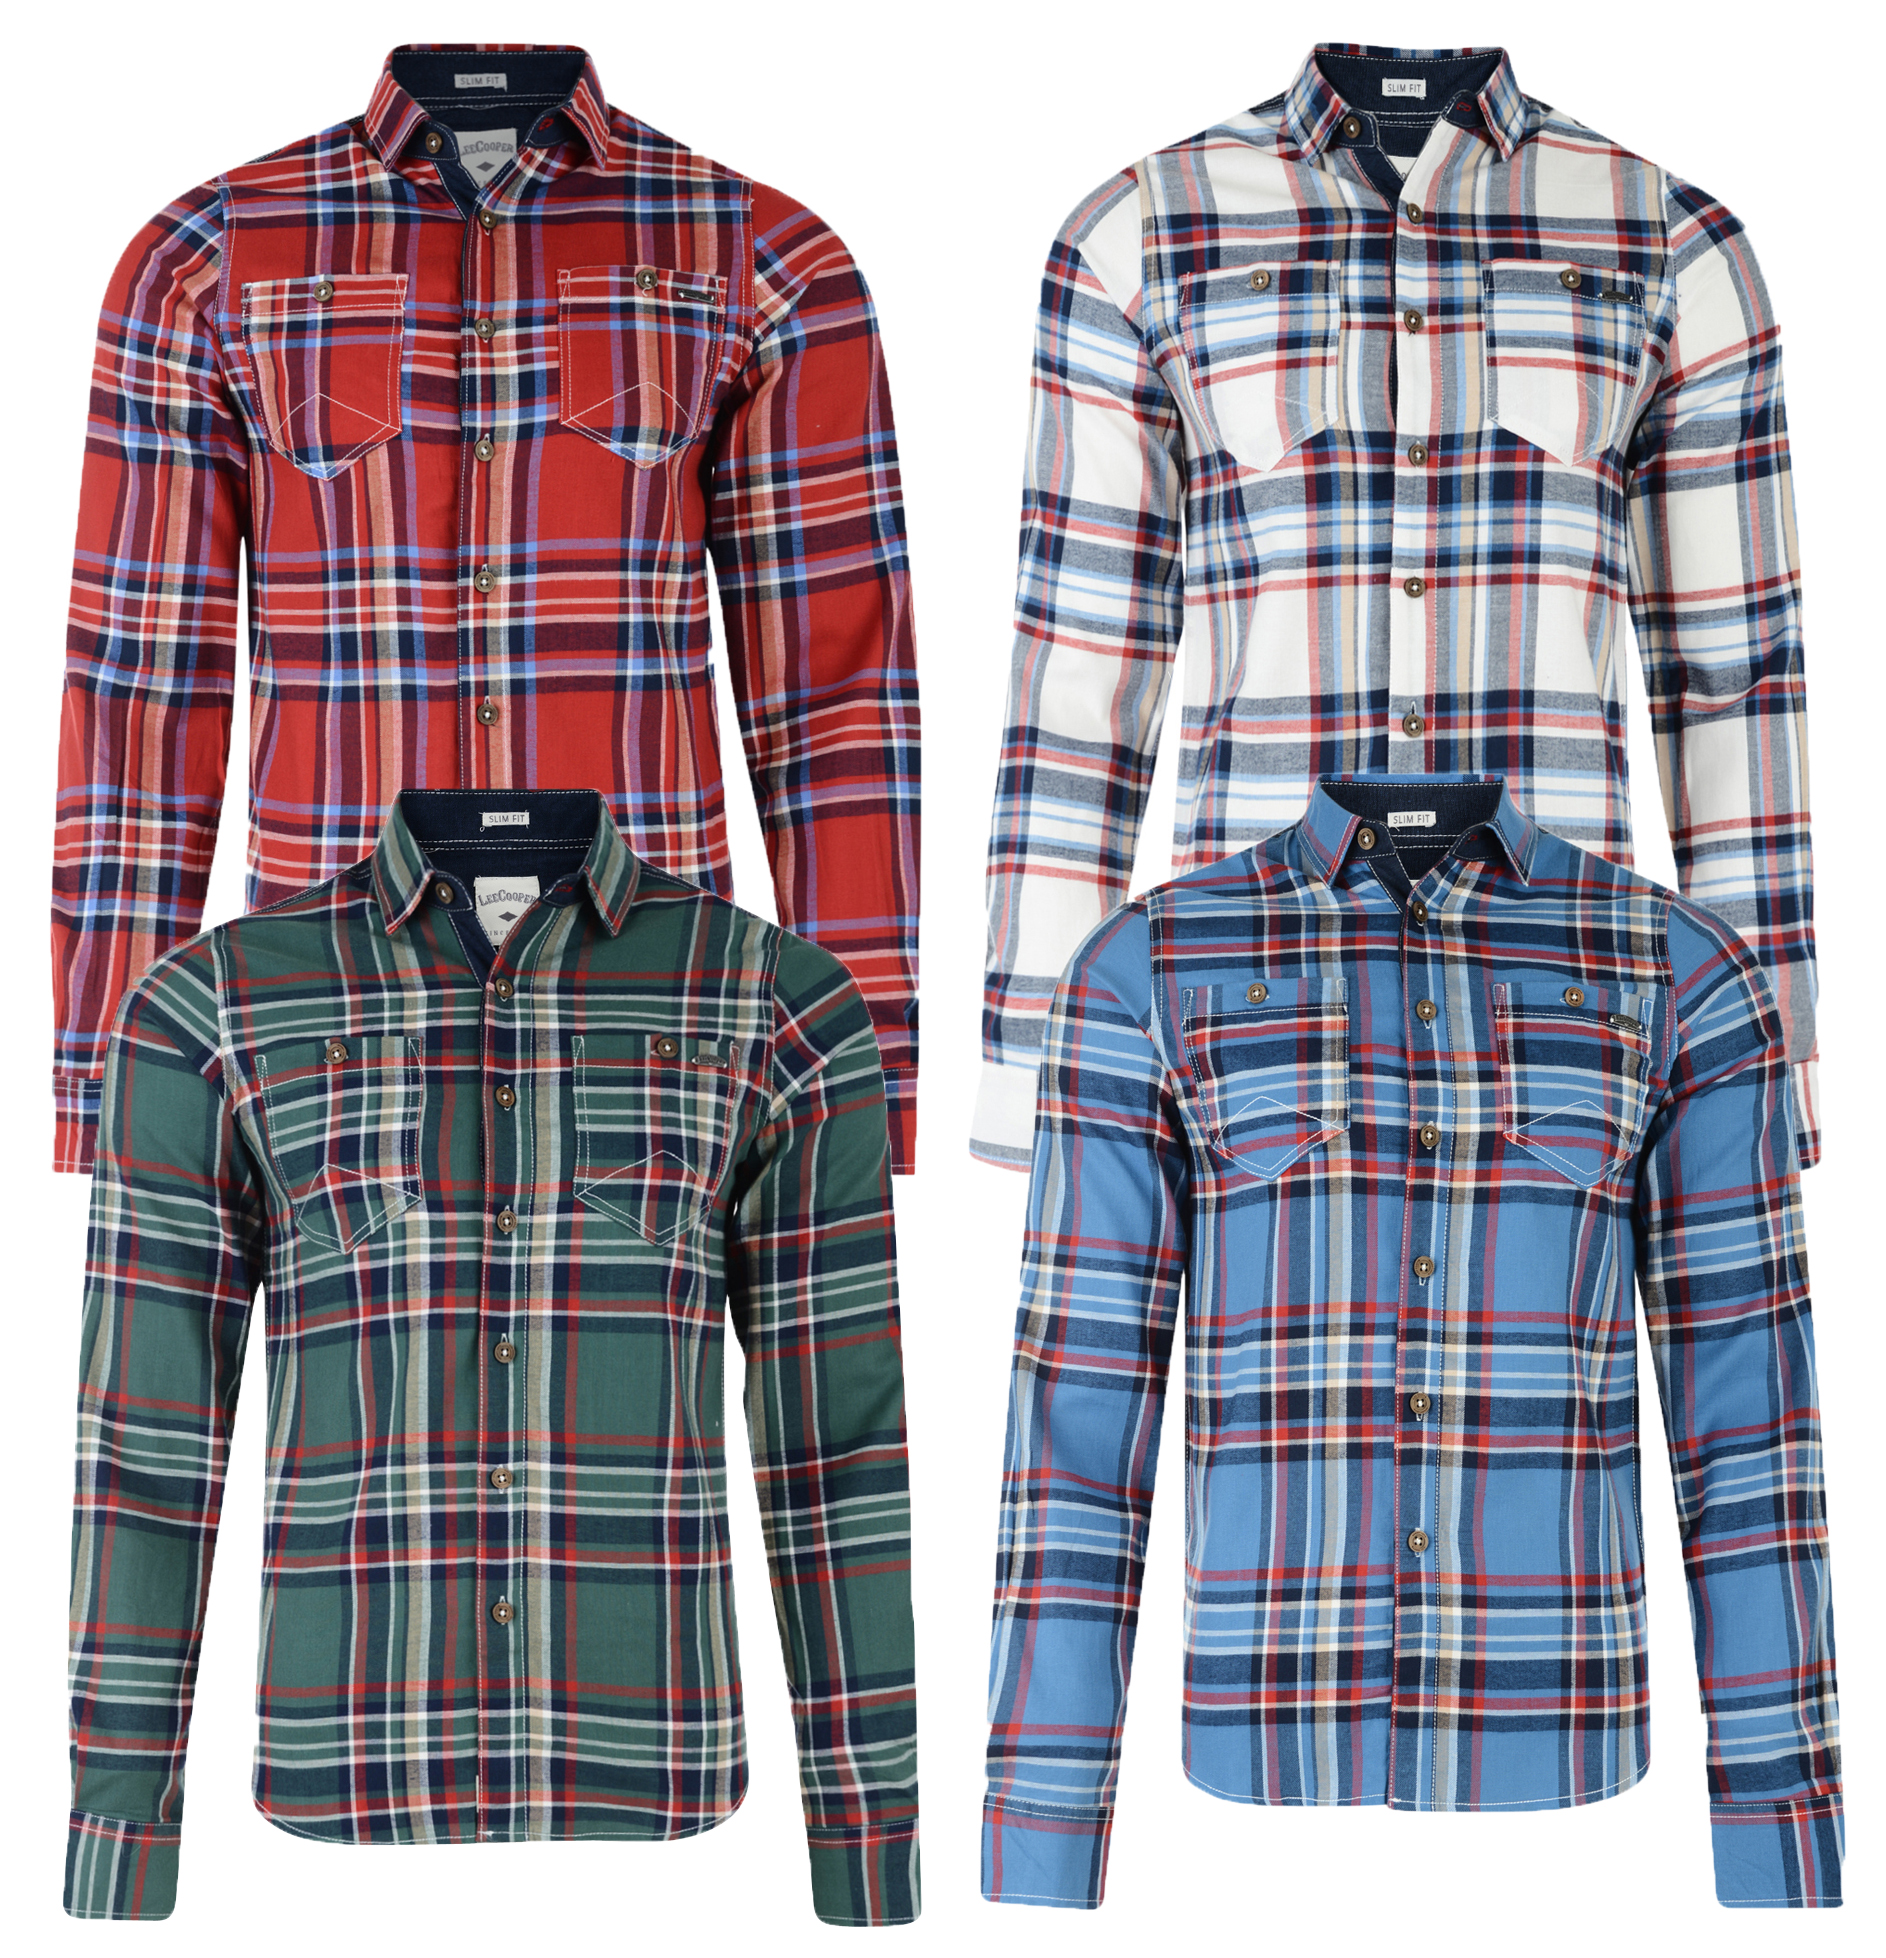 558f412c0 Lee Cooper Long Sleeve Men's Wandsworth Cotton Check Shirt Red Green ...